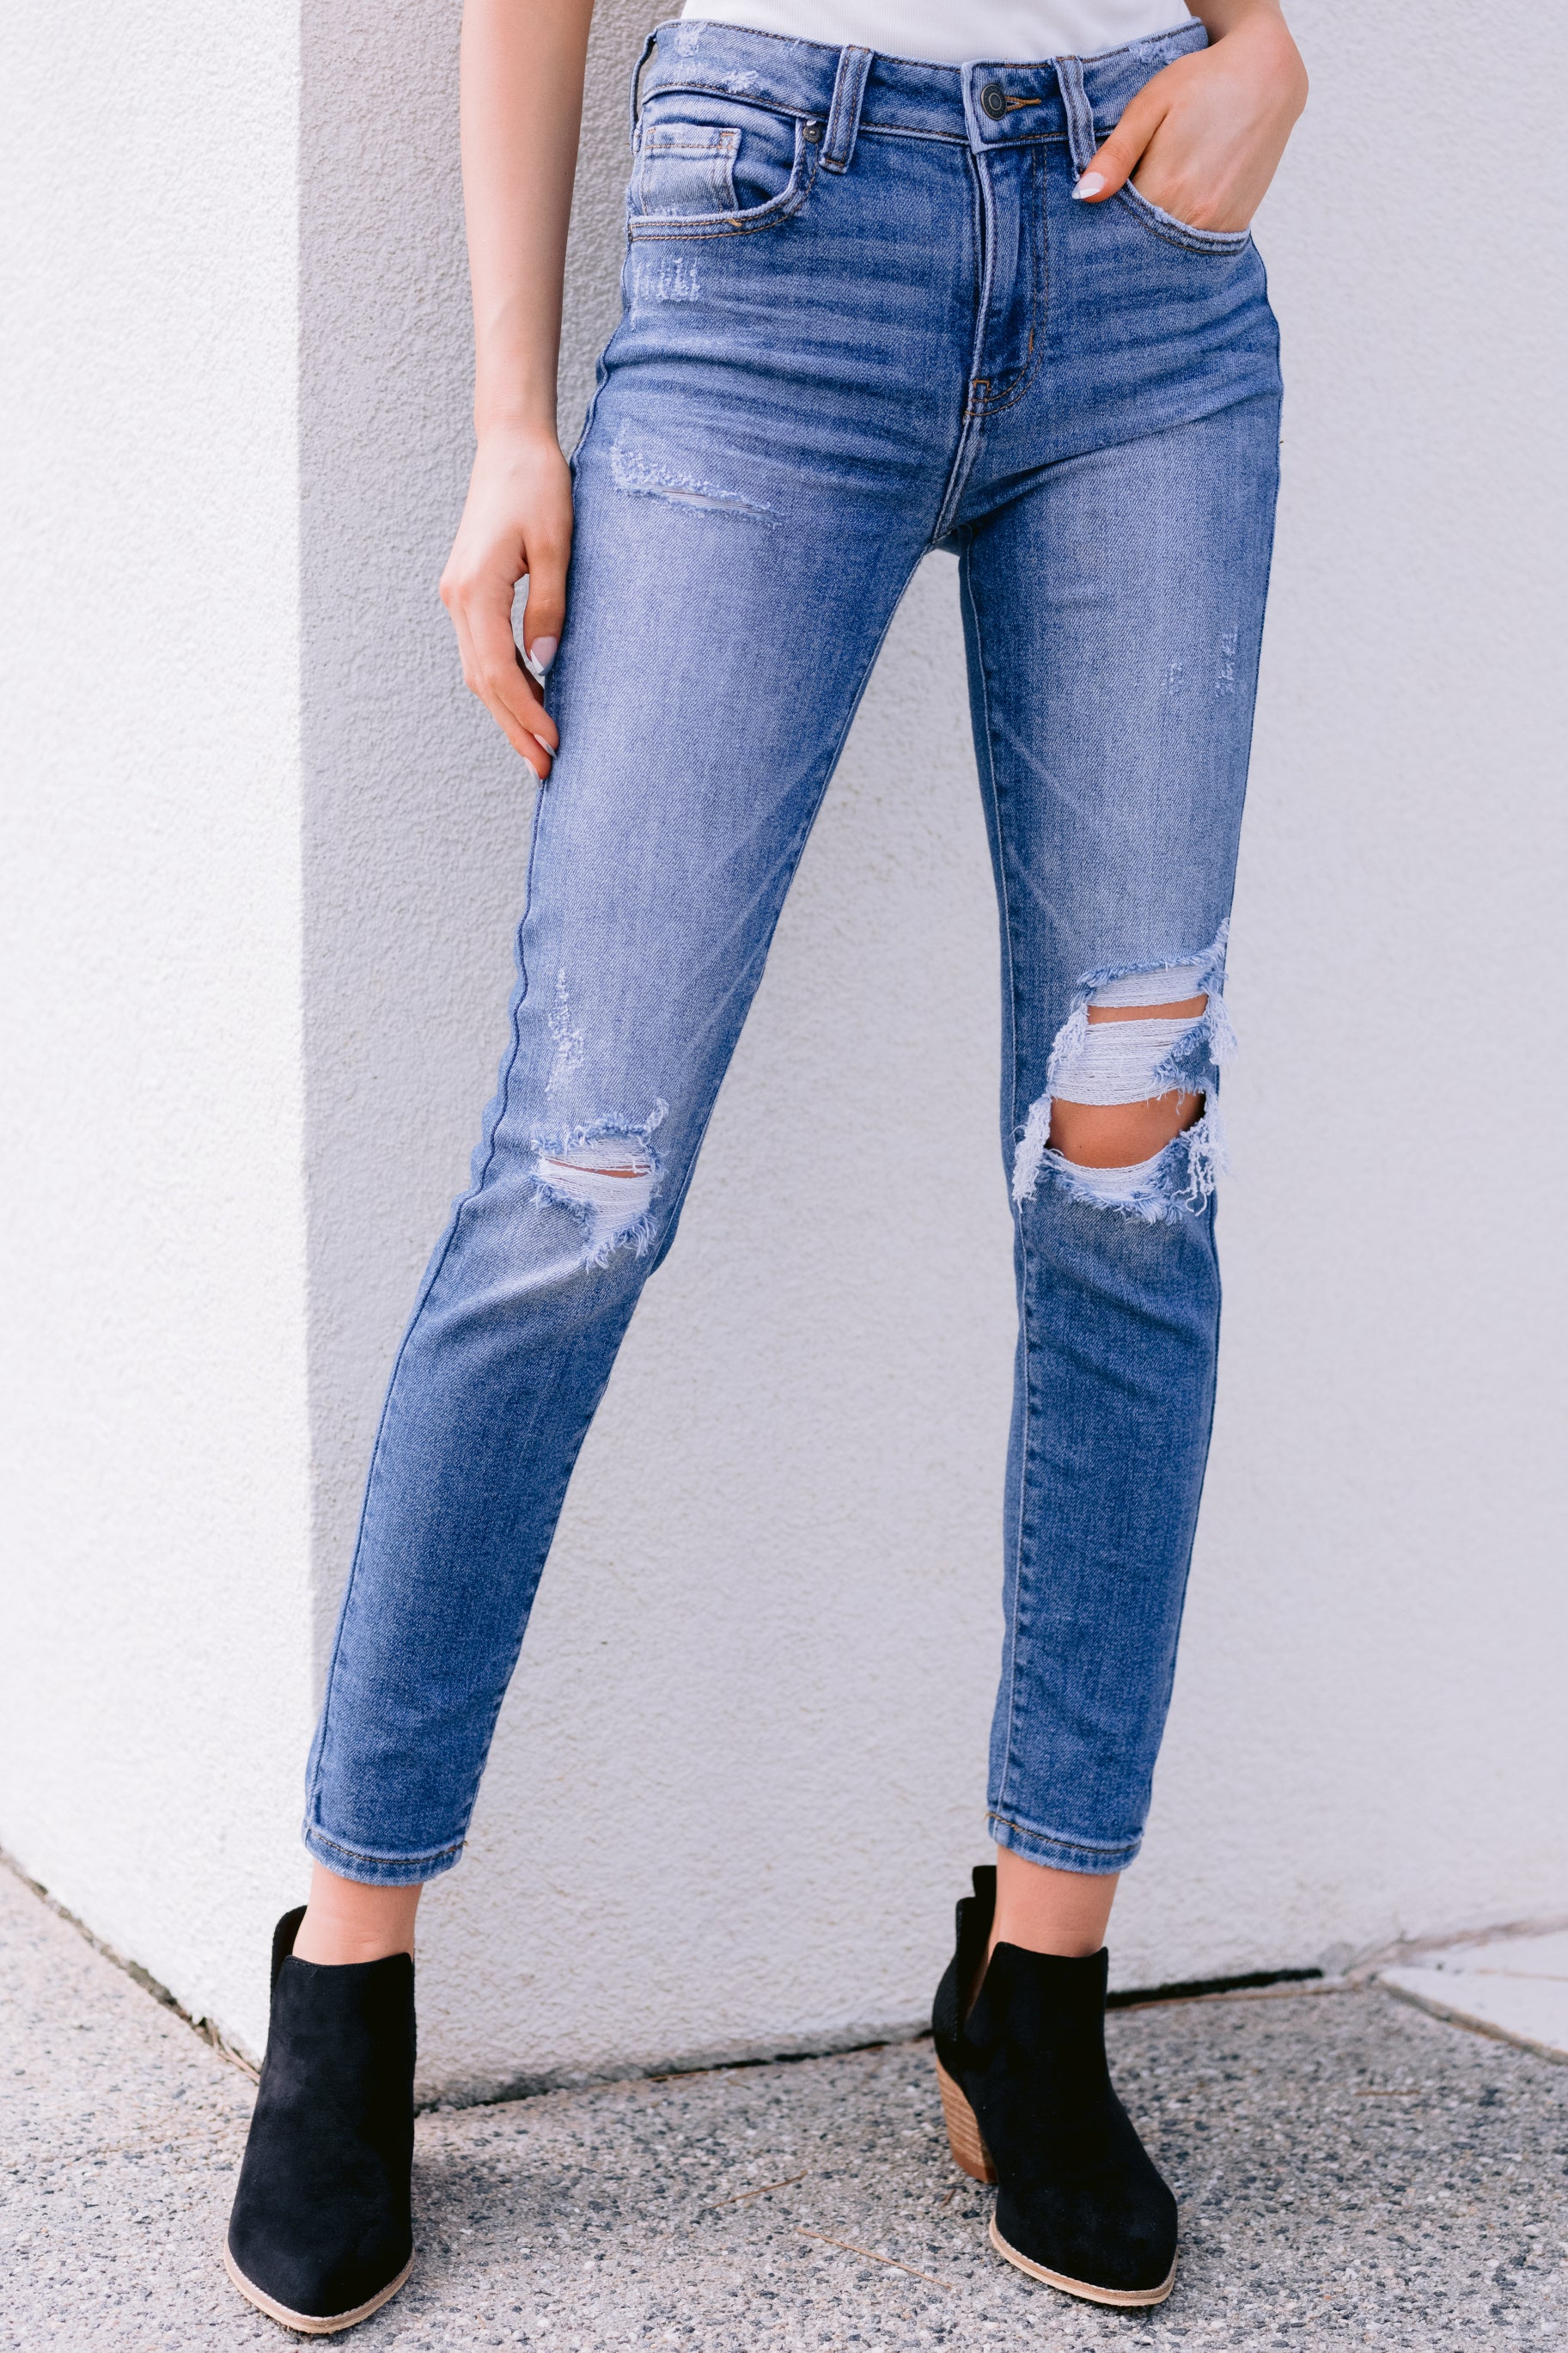 3 In Action Medium Wash Distressed Skinny Jeans at reddress.com